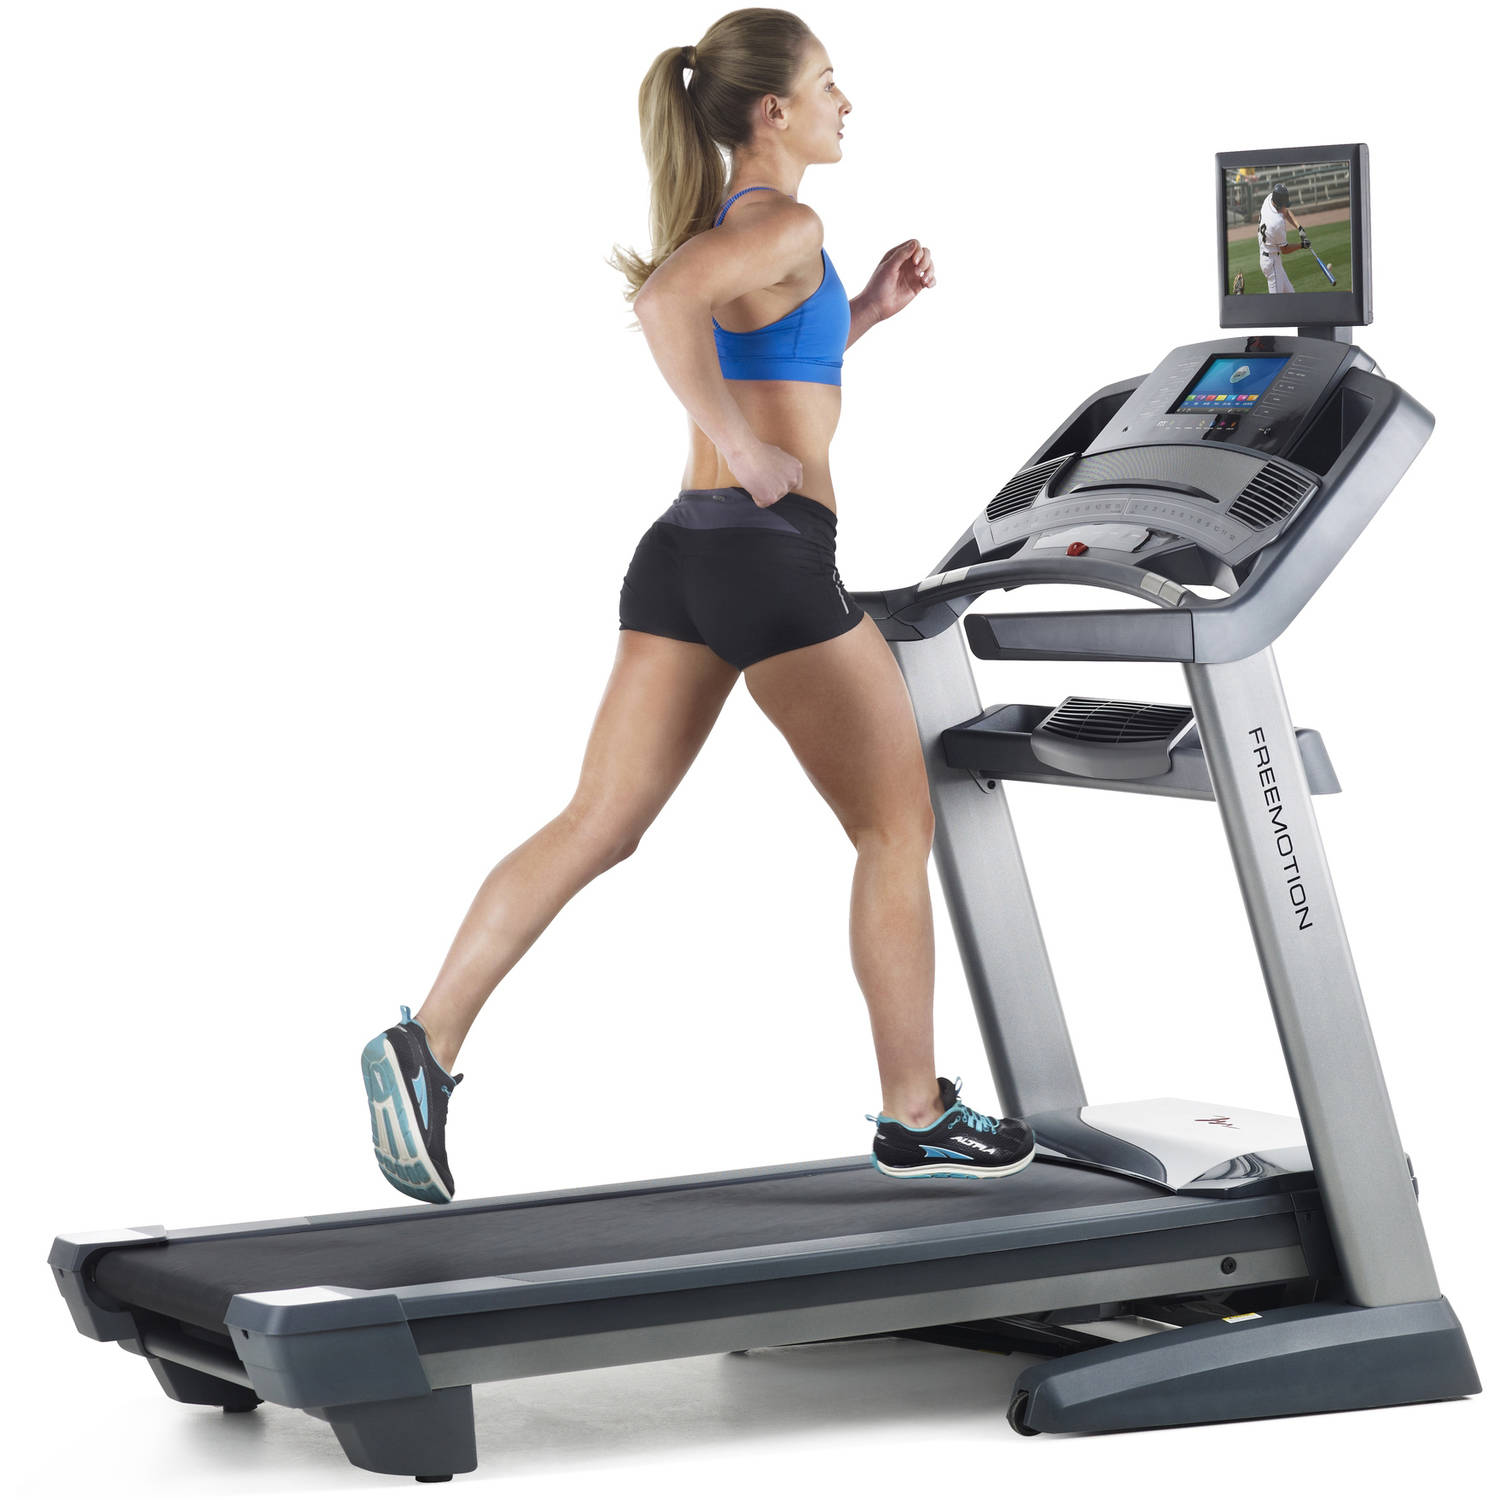 Freemotion 890 Treadmill, Powered by iFit